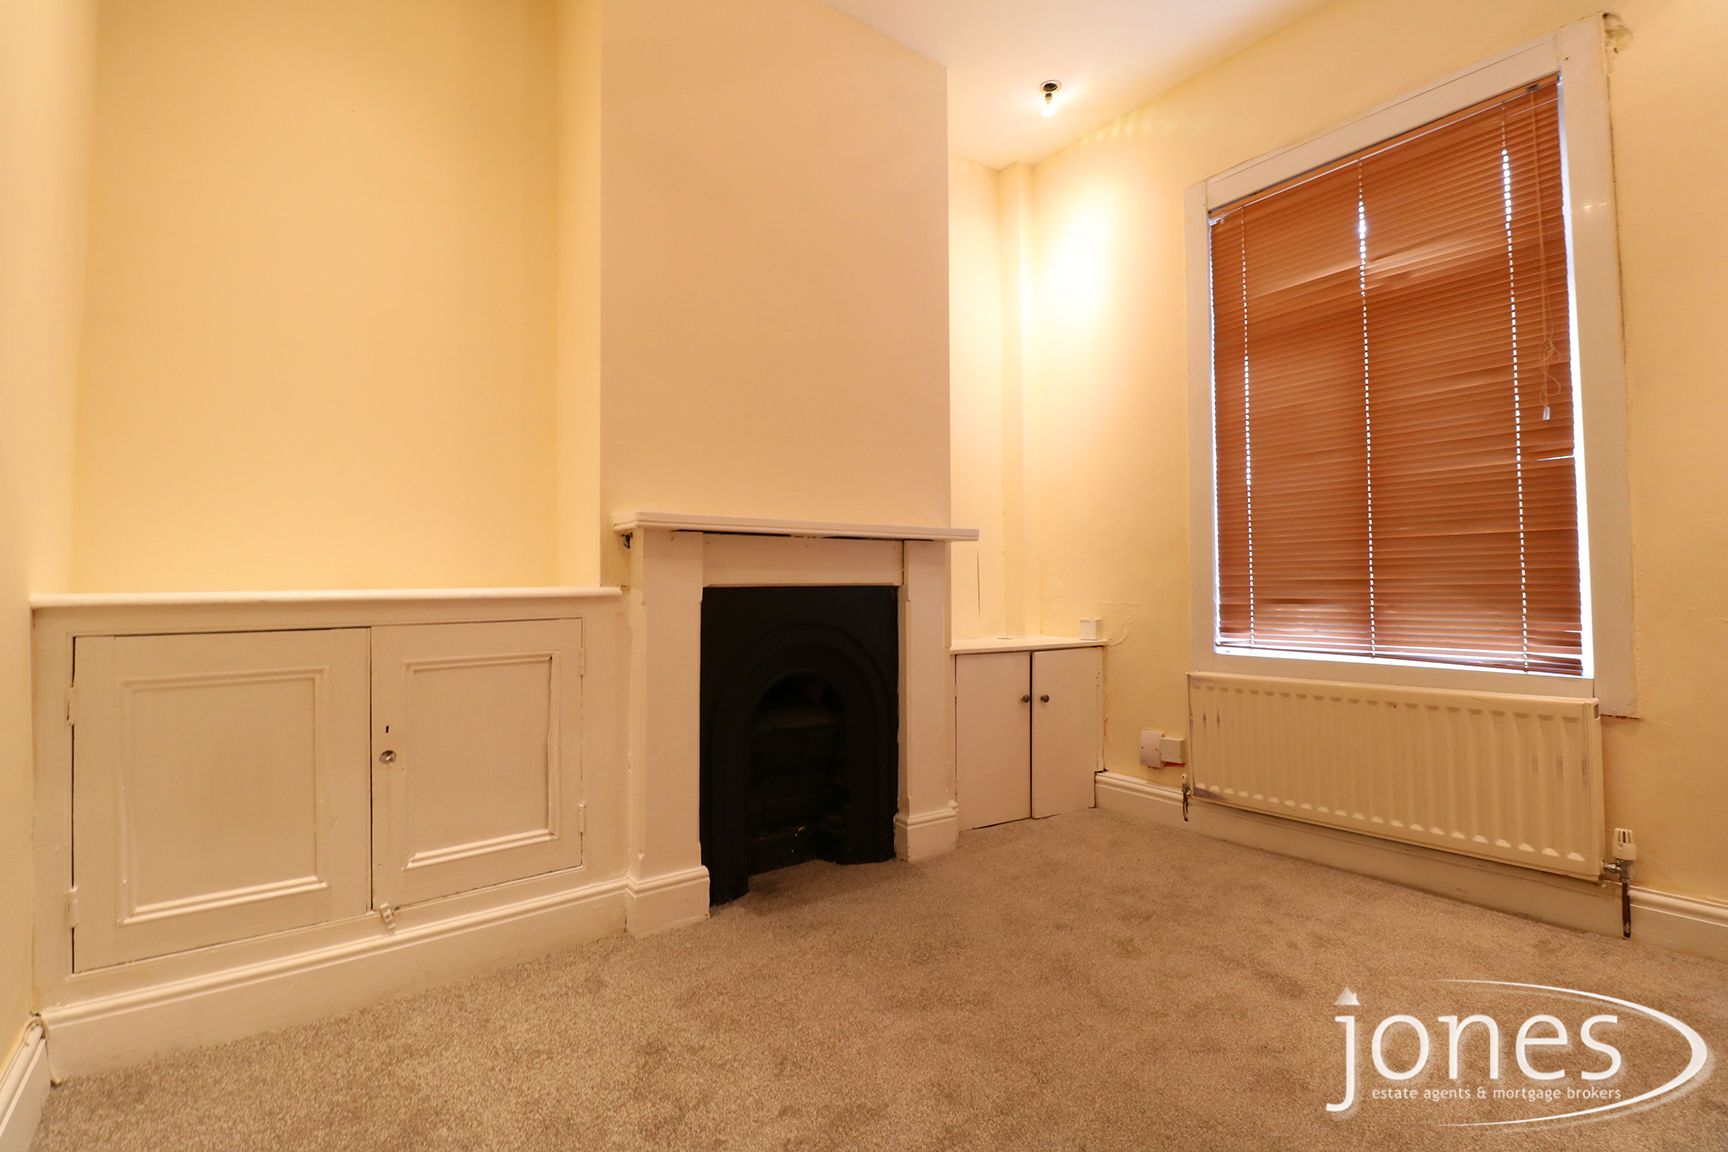 Home for Sale Let - Photo 02 Hallifield Street, Norton, Stockton on Tees, TS20 2HE